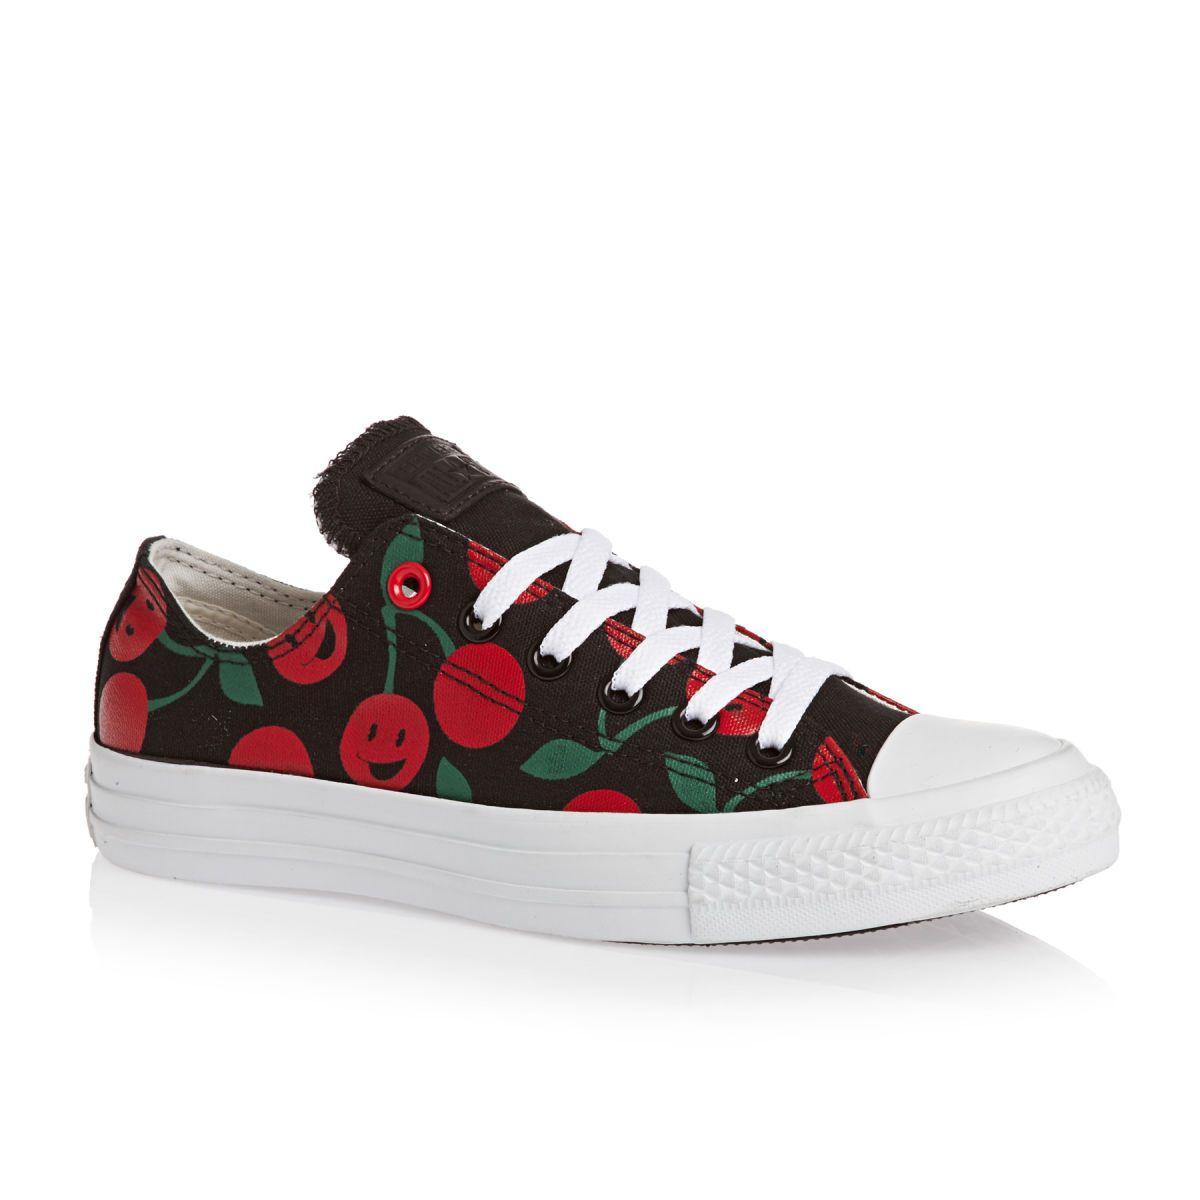 Converse Chuck Taylor All Stars Cherry Print Shoes - Black